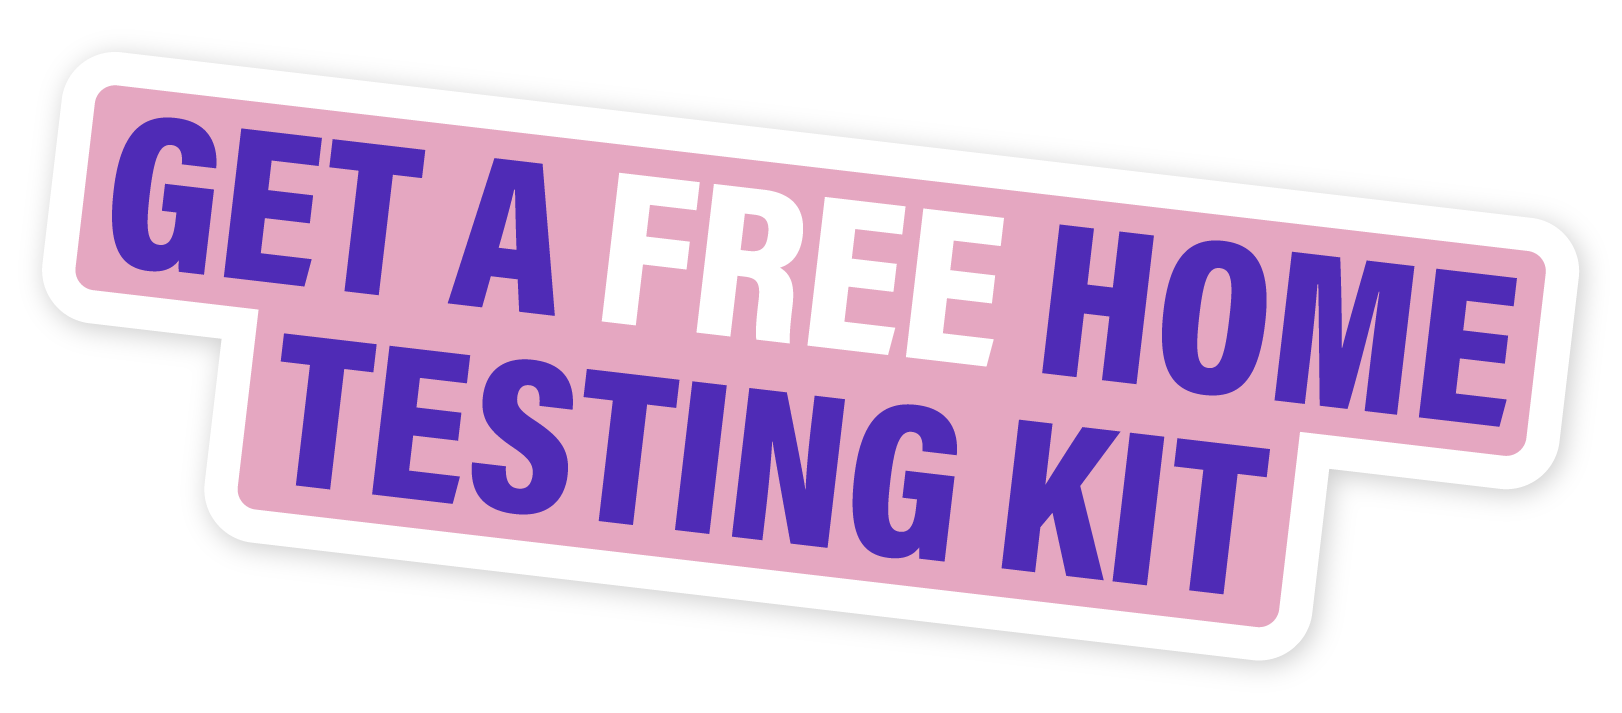 Get a free home testing kit